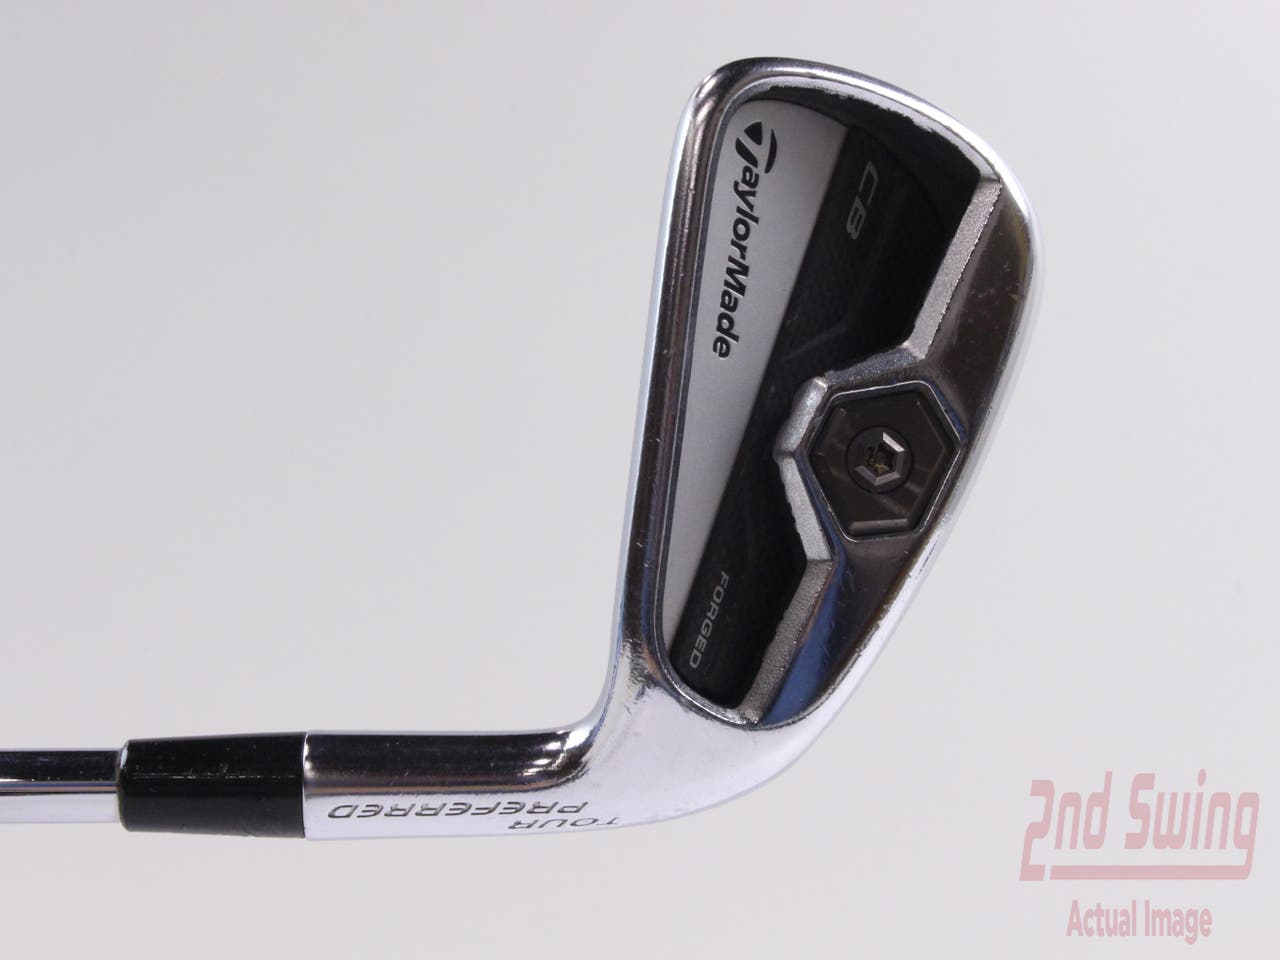 TaylorMade 2011 Tour Preferred CB Single Iron 6 Iron Dynalite Gold XP S300 Steel X-Stiff Right Handed 39 in